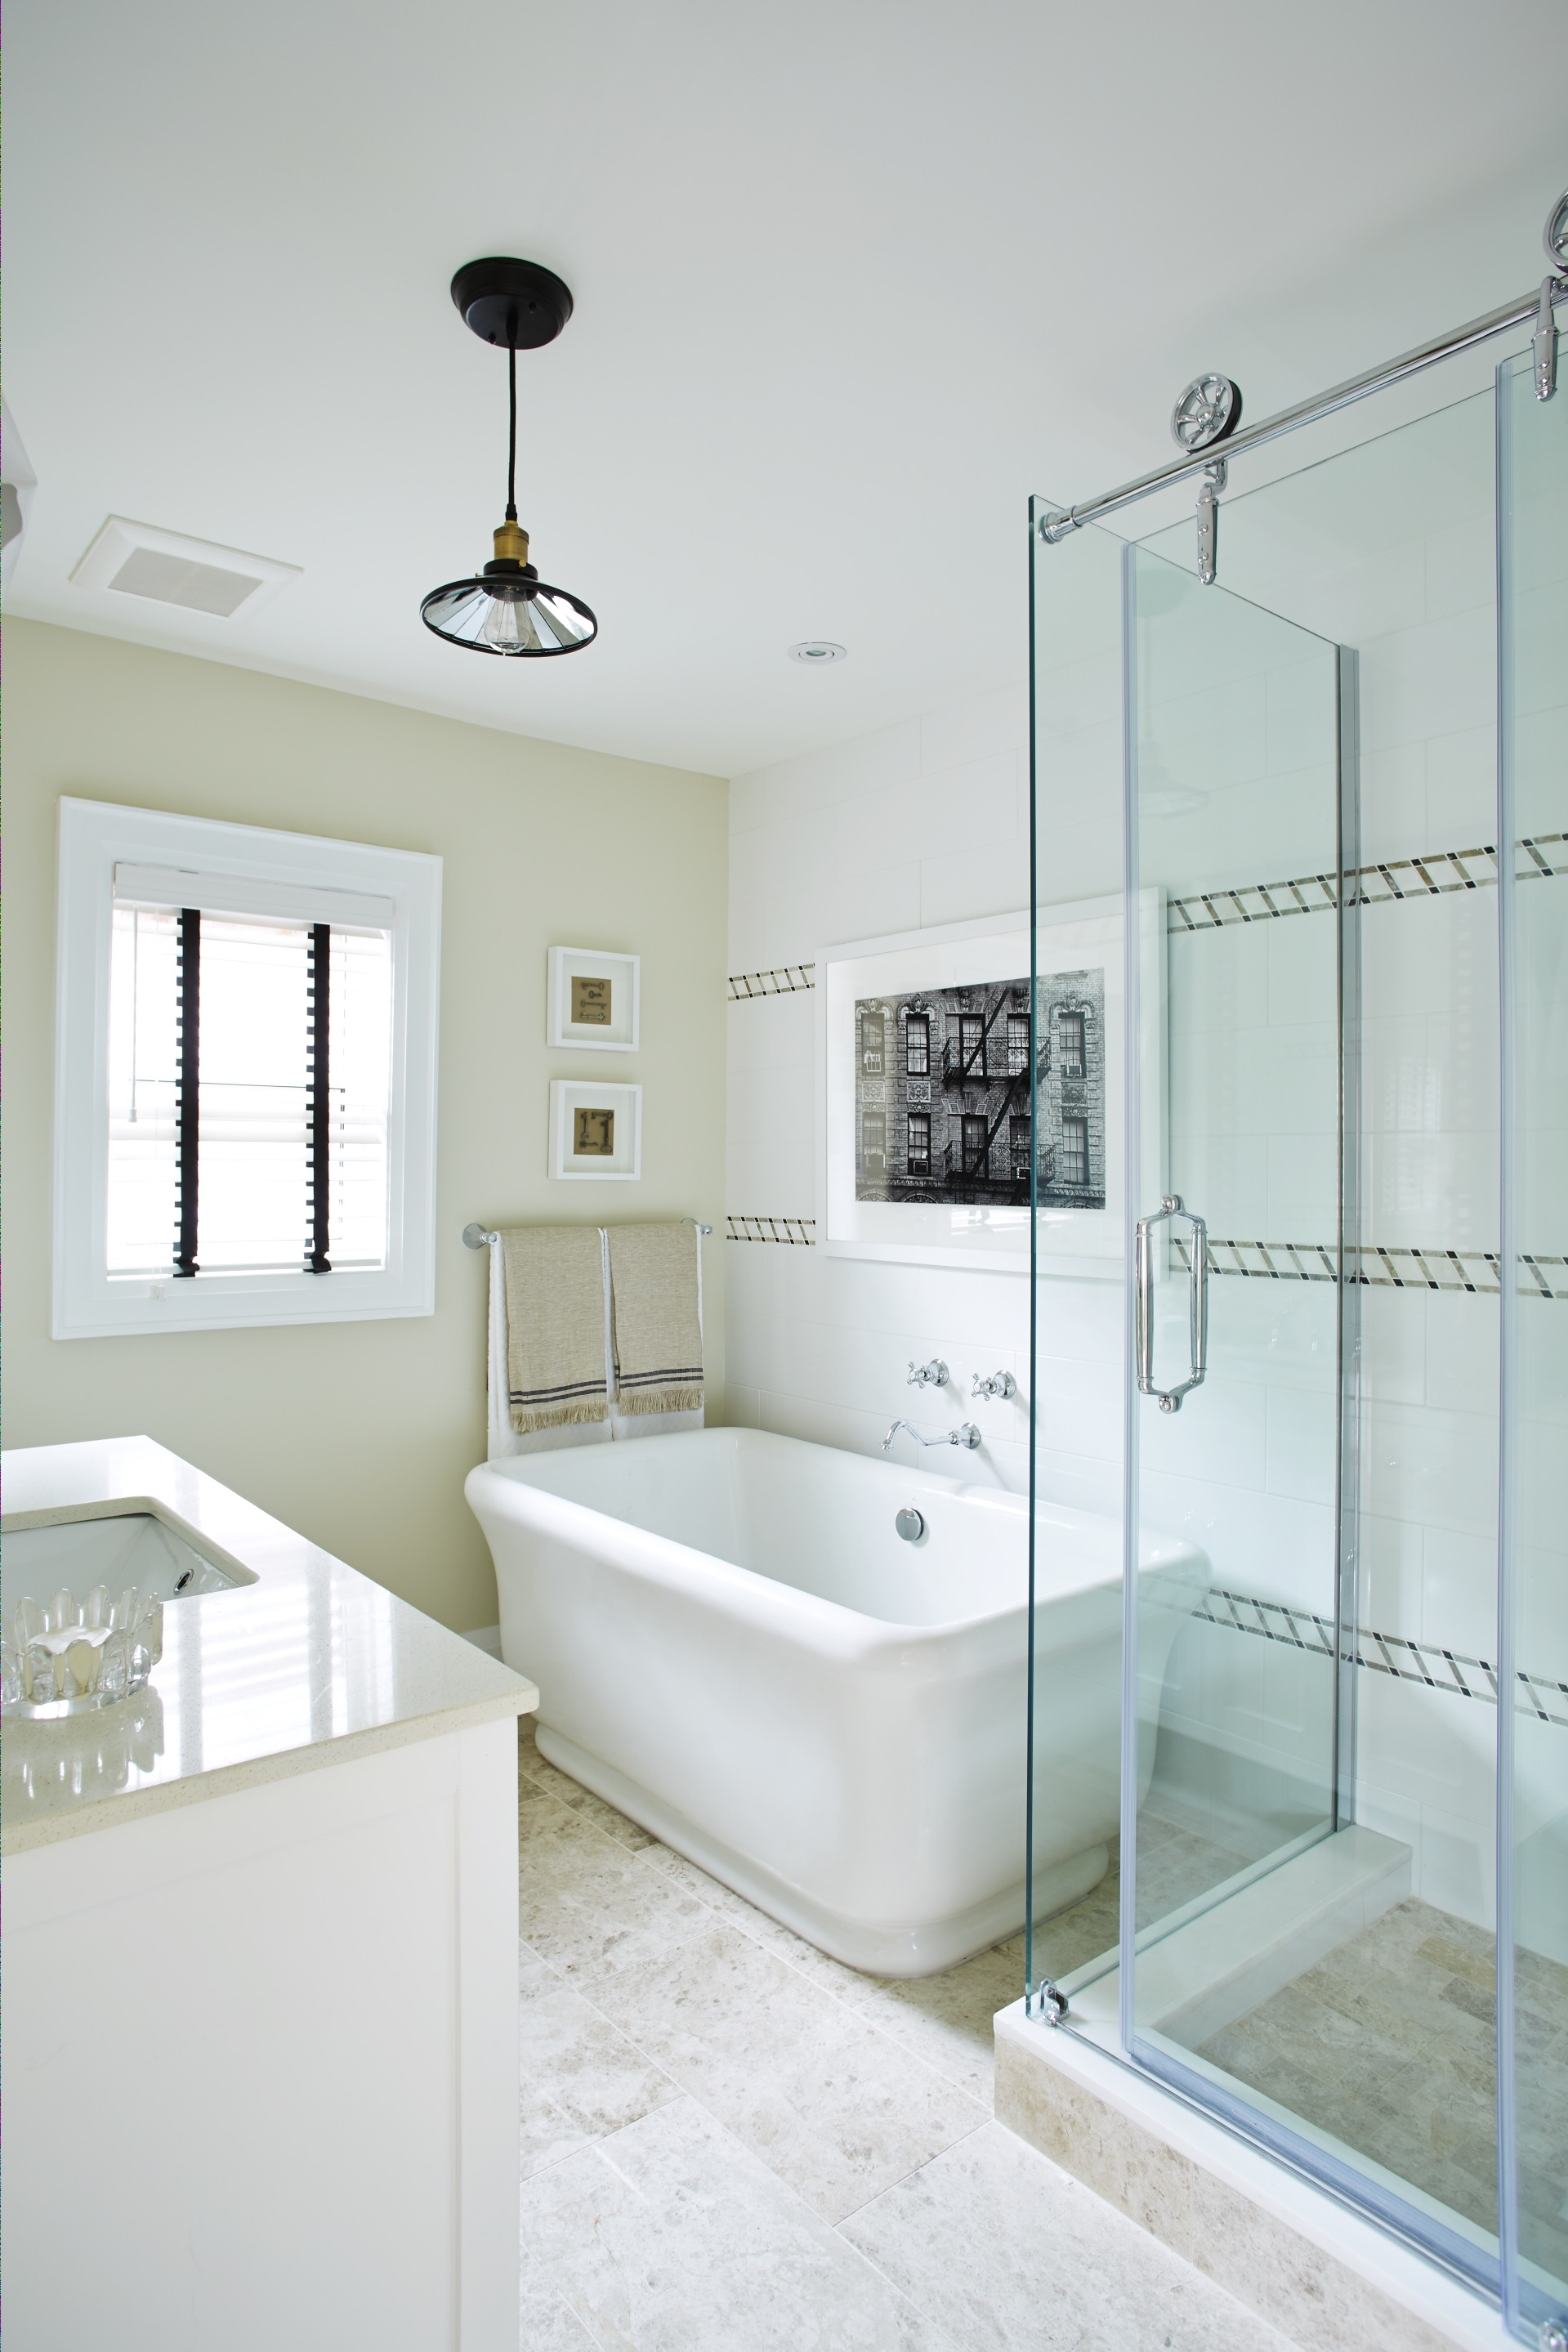 Beauty Classic Modern Design Combo For Bathroom With Shower And Tub (Image 3 of 19)